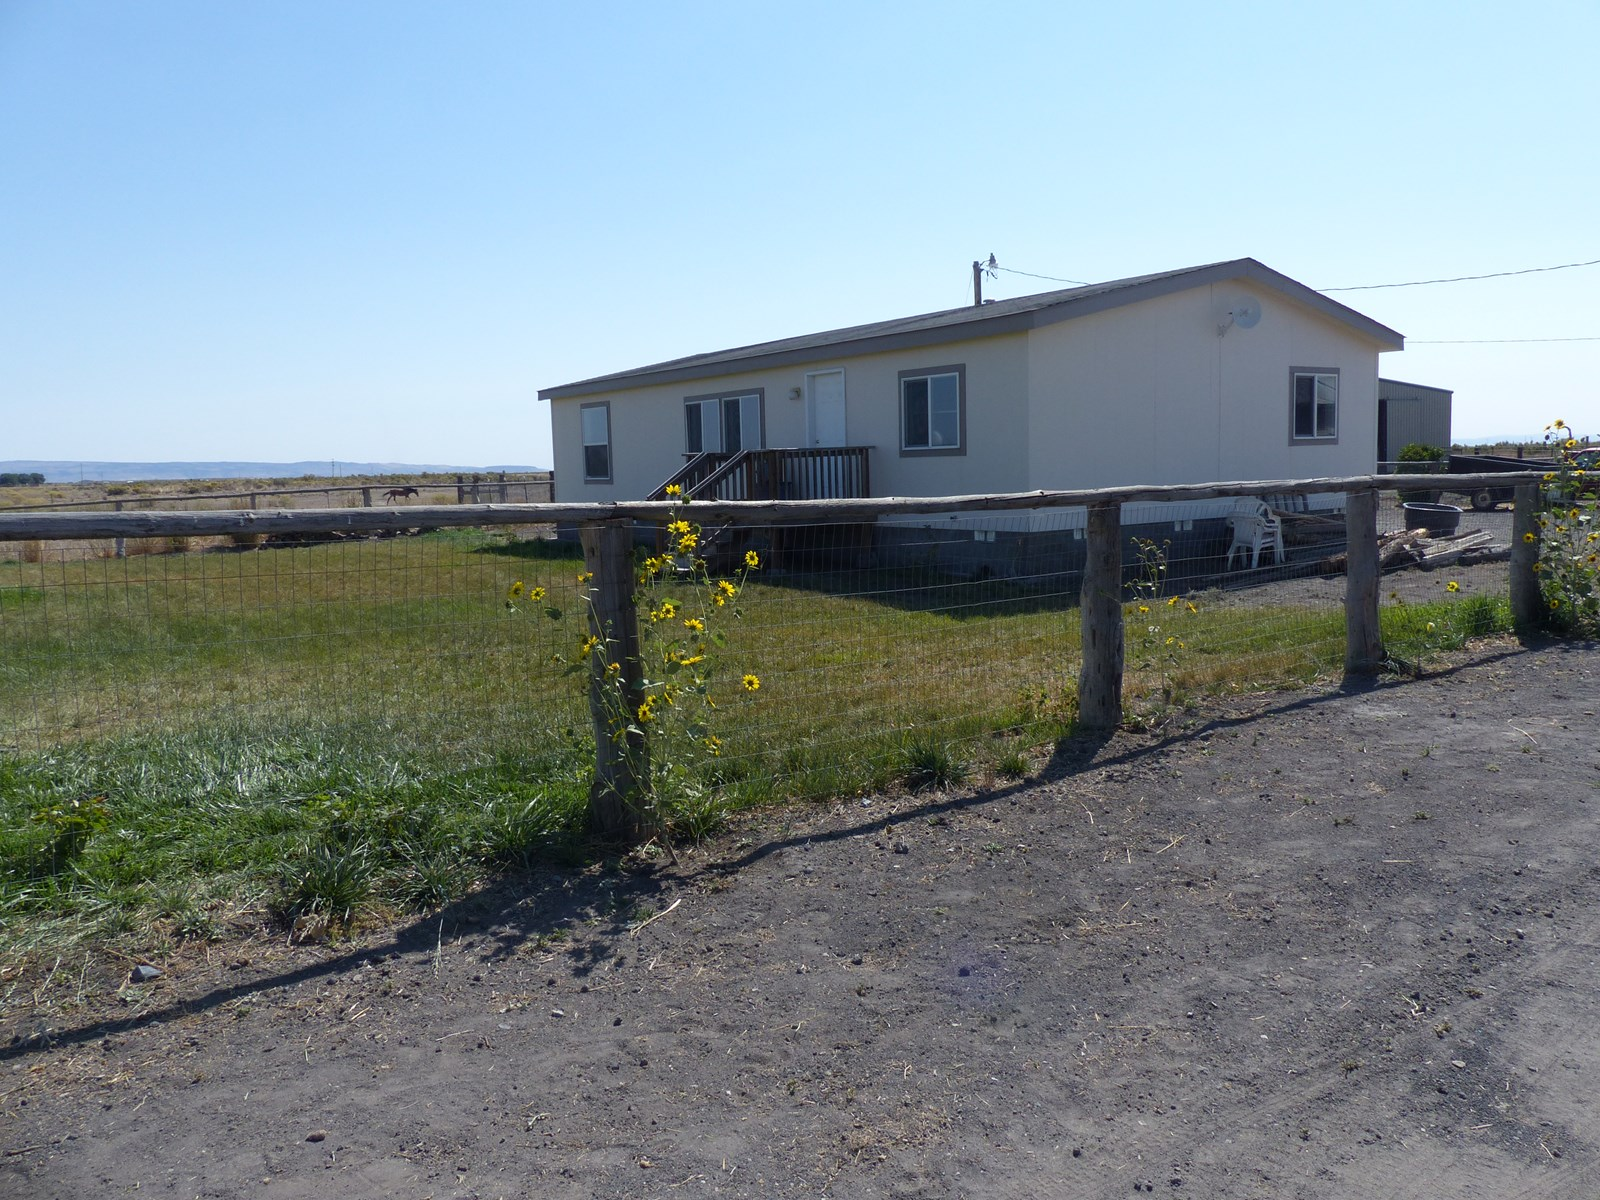 HORSE PROPERTY FOR SALE IN BURNS OR -  OWNER TERMS!!!